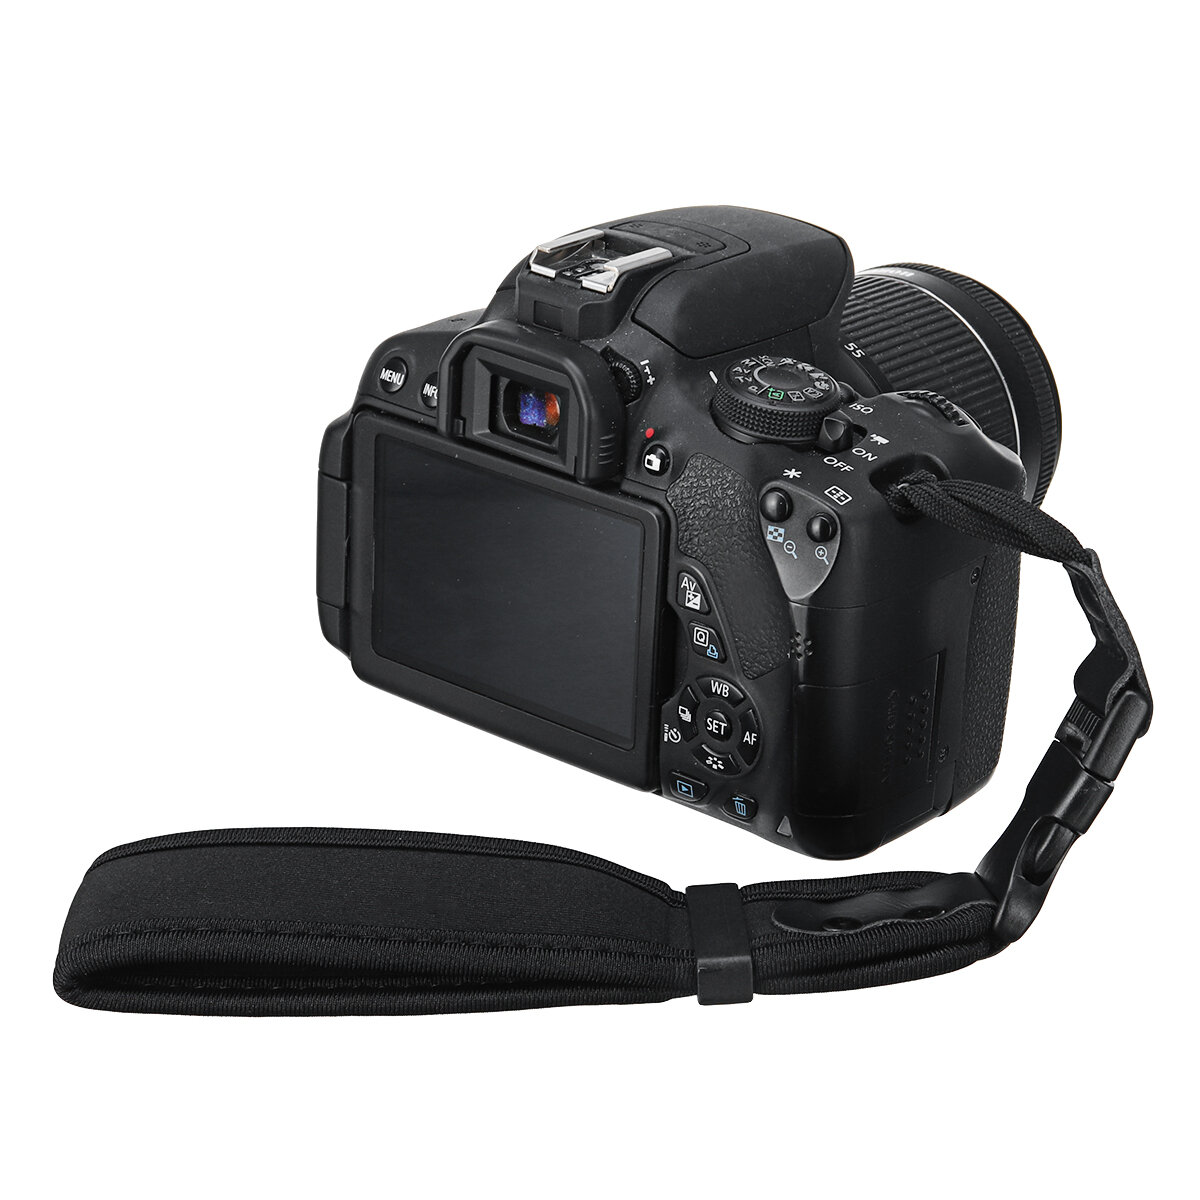 Universal Adjustable Camera Wrist Strap Hand Grip for Canon for Nikon for Sony